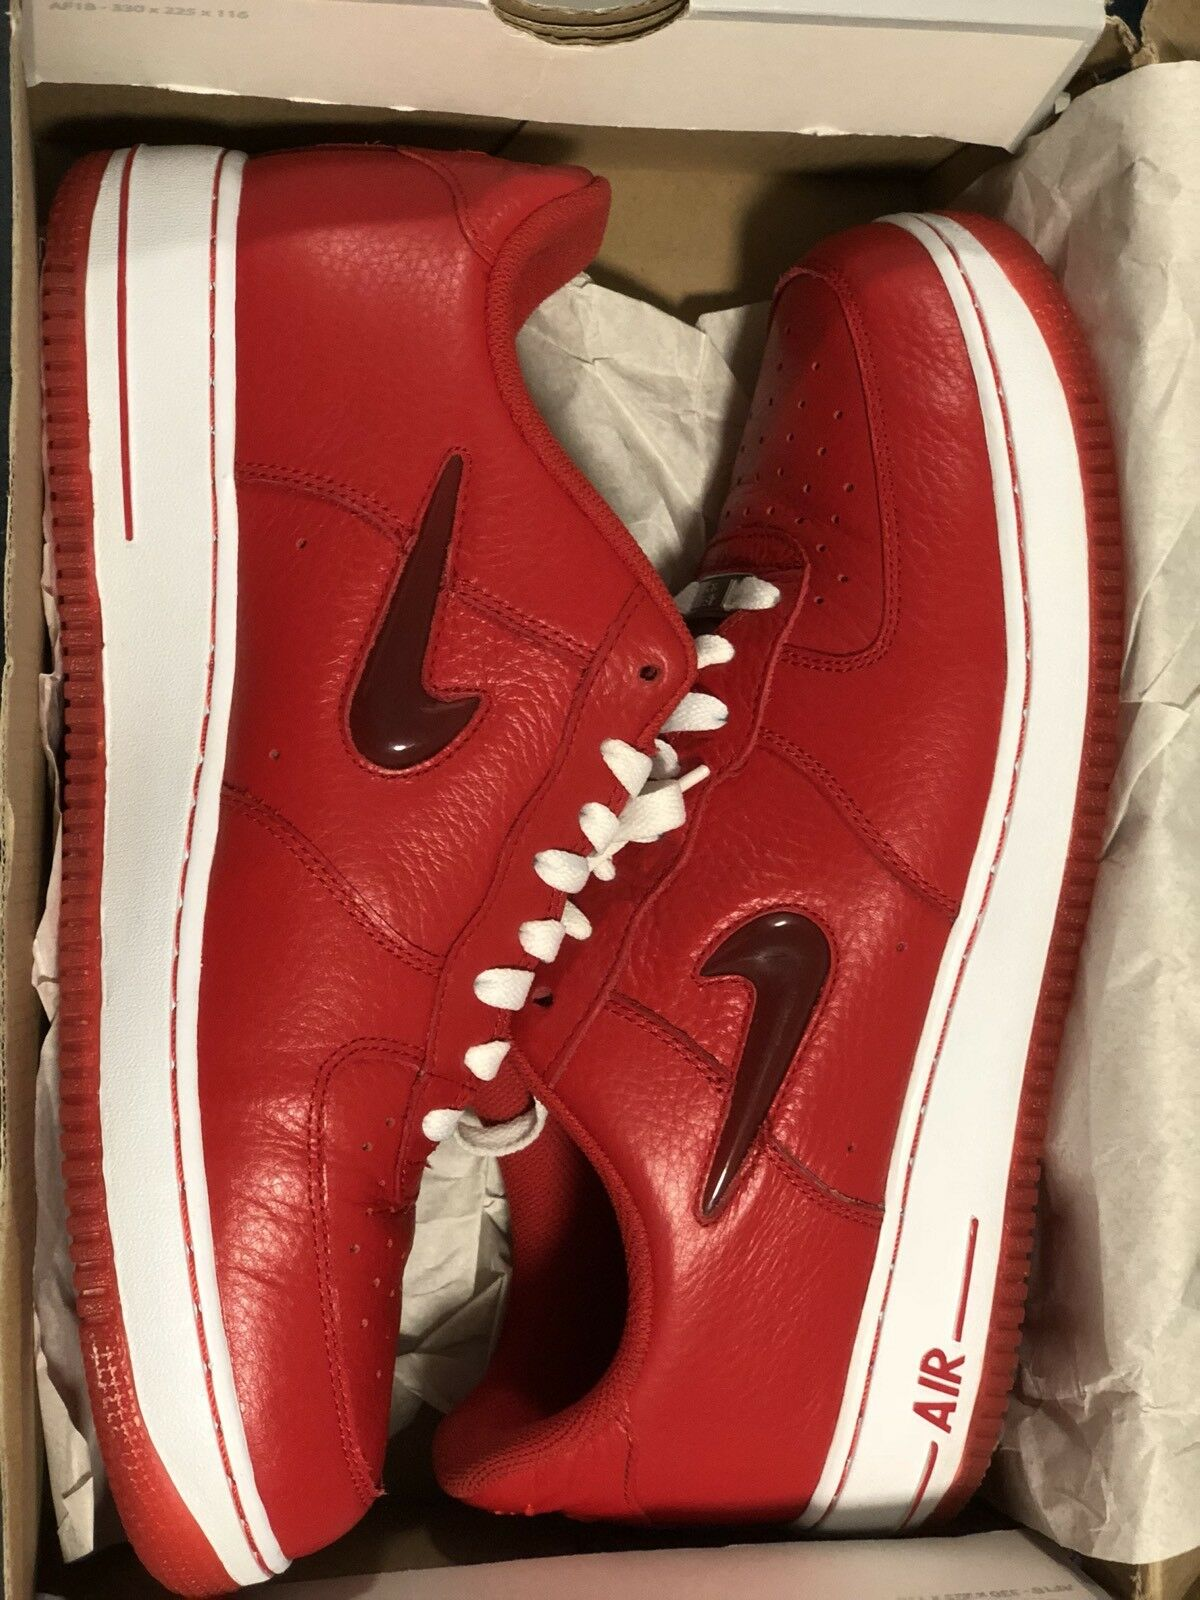 NIKE AIR FORCE 1 SPORT RED LEATHER SZ 11.5 AF1 RED GUM SOLE JORDAN KOBE